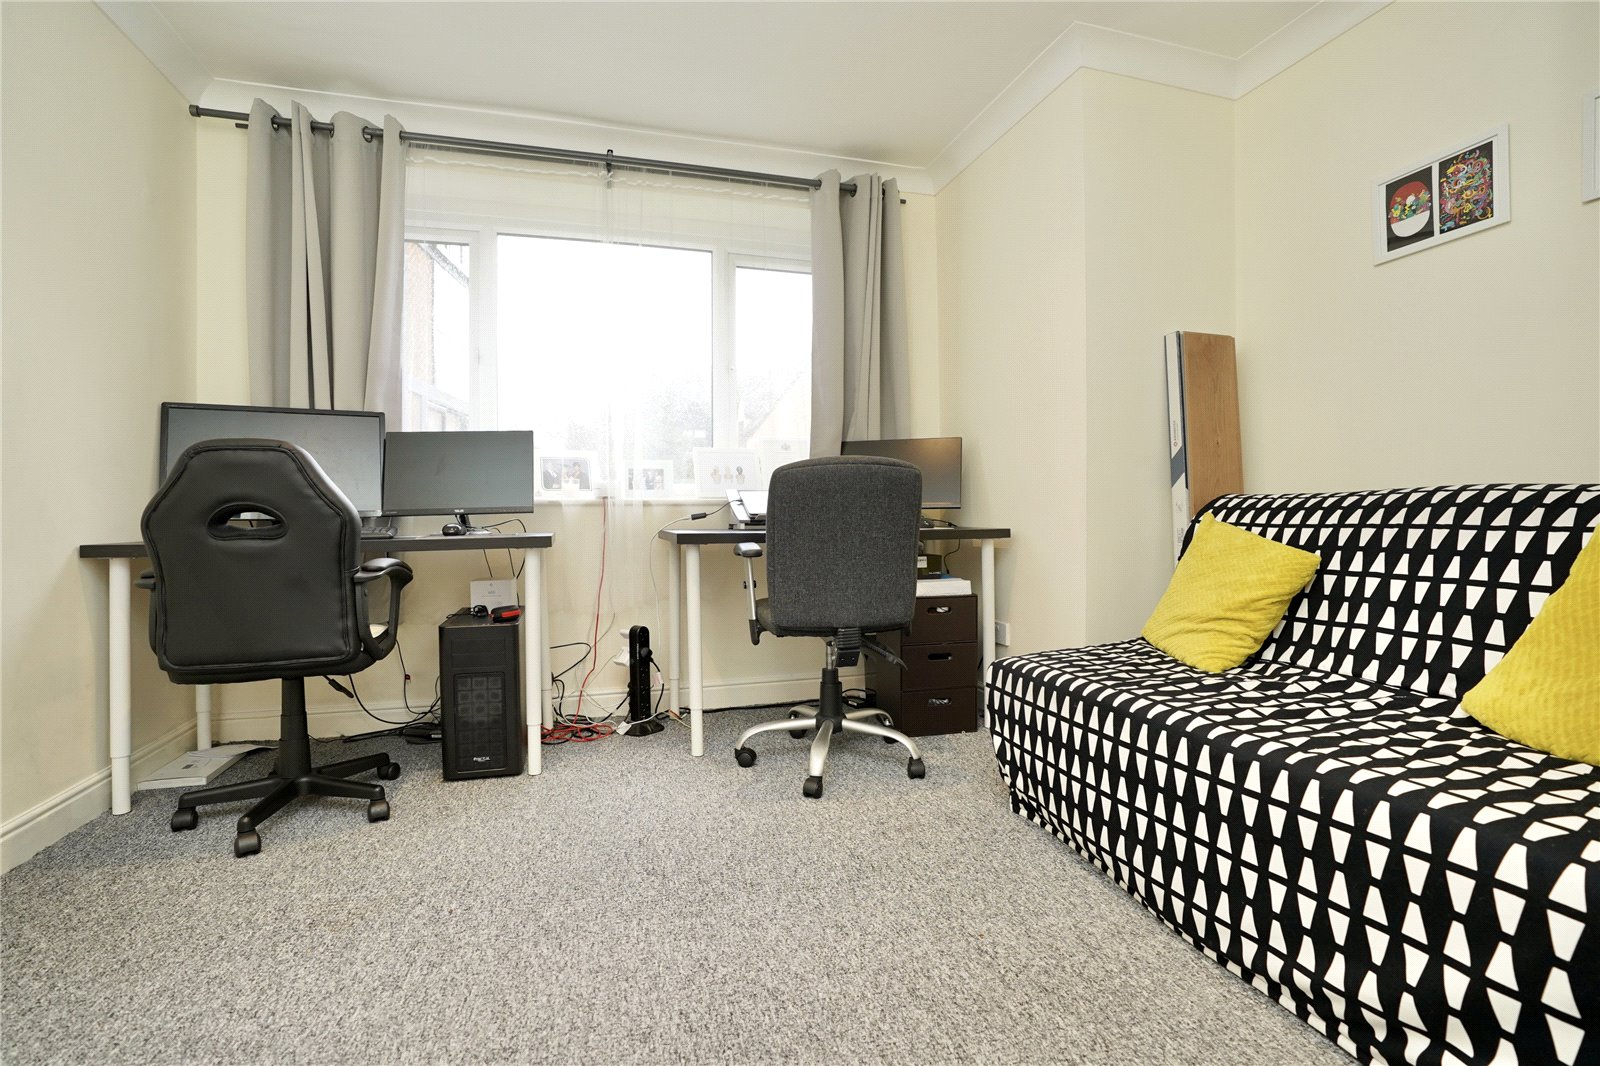 2 bed apartment for sale in Earith, PE28 3PP  - Property Image 10